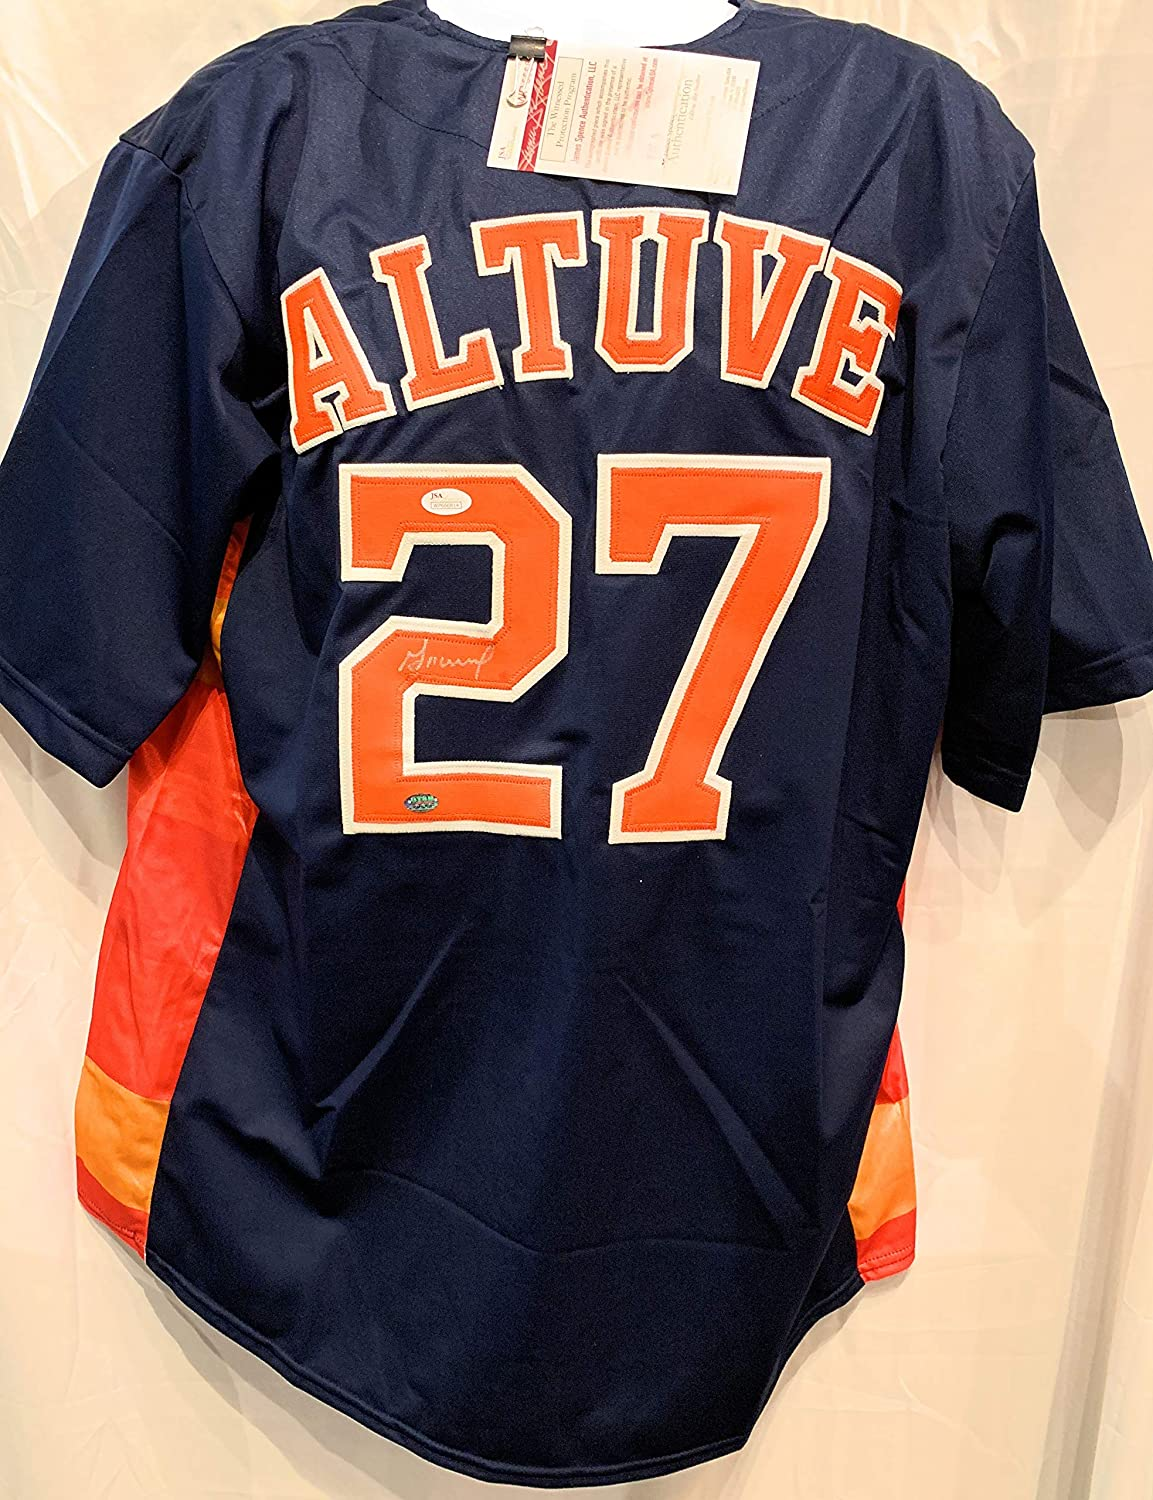 Jose Altuve Houston Astros Signed Autograph Blue Custom Jersey GTSM JSA Certified